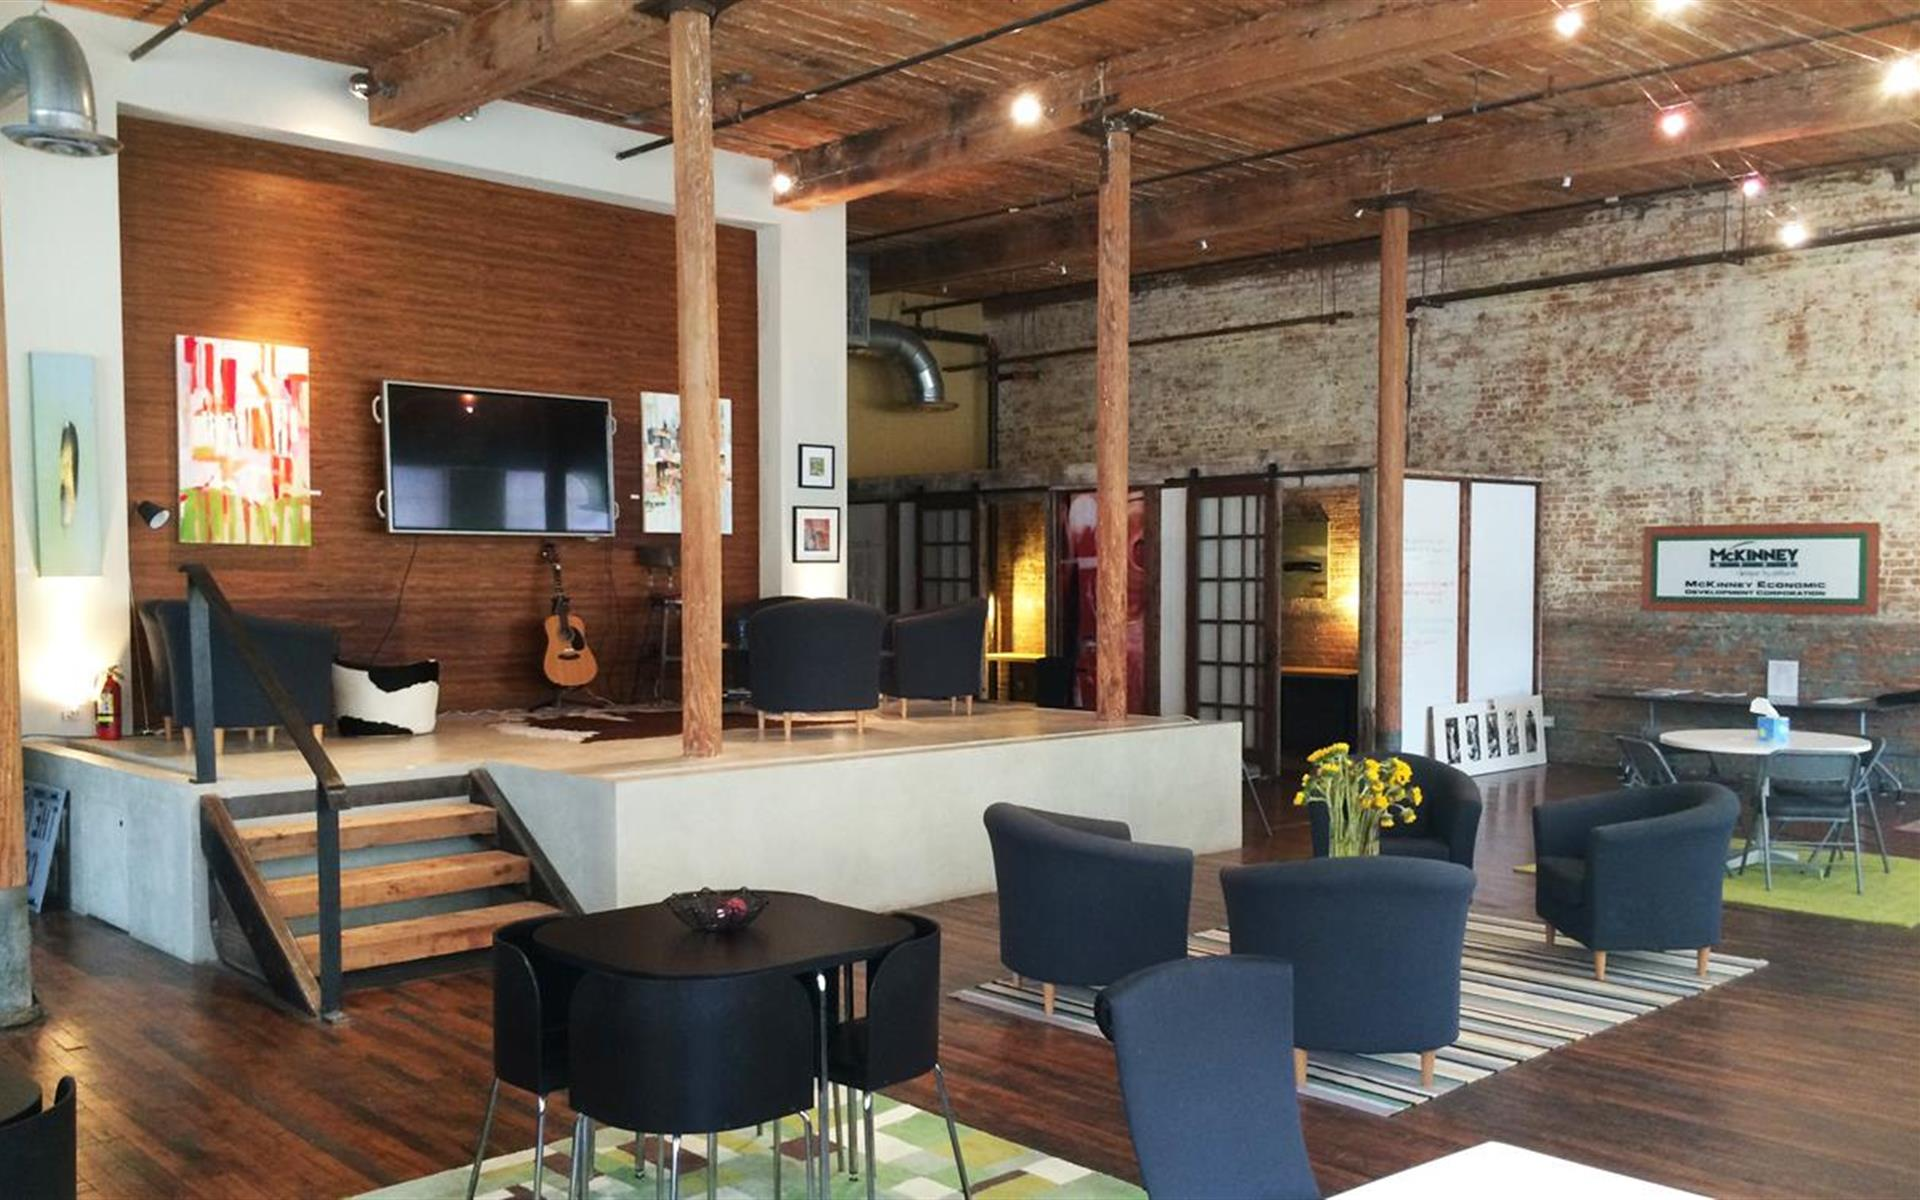 McKinney WERX Conference Room - The Werx Meeting Space